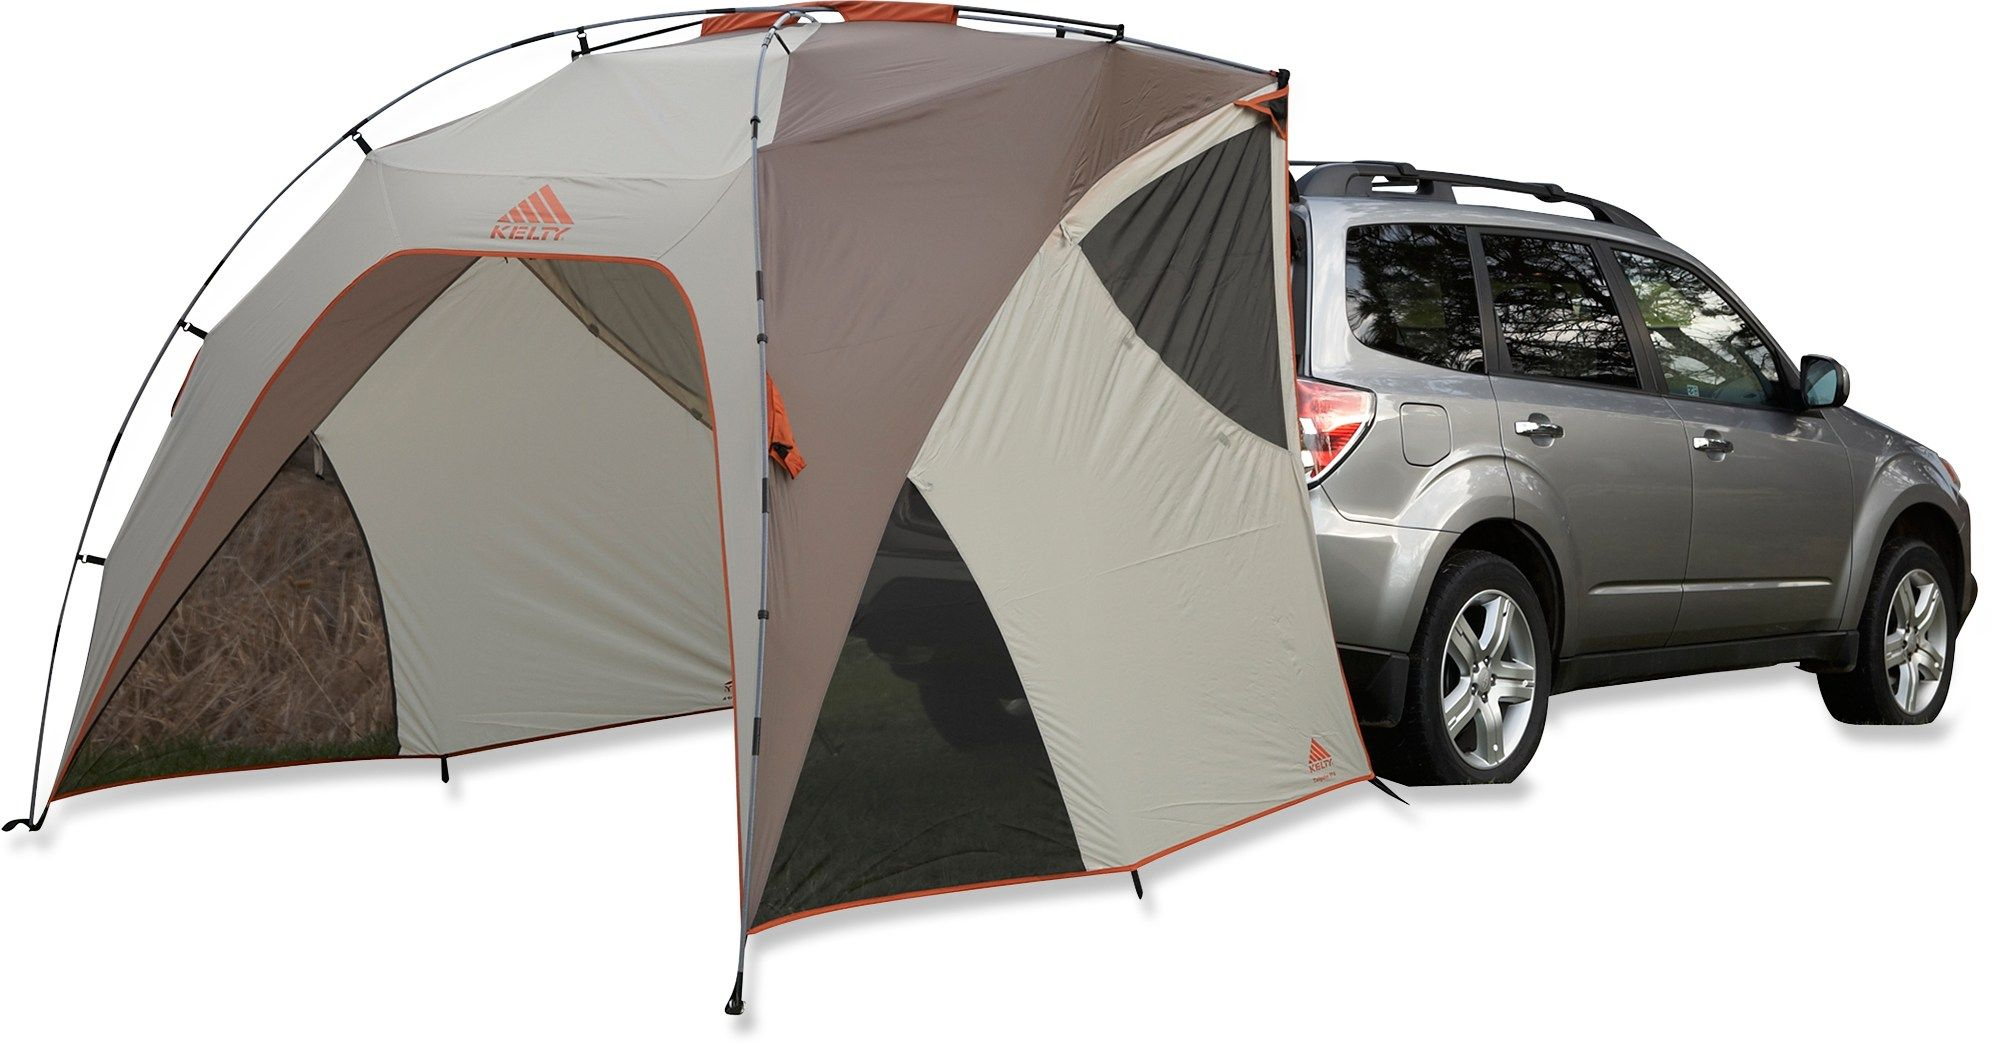 Kelty Tailgater IPA Shelter - Free Shipping at REI.com  sc 1 st  Pinterest & Kelty Tailgater IPA Shelter - Free Shipping at REI.com | REI ...